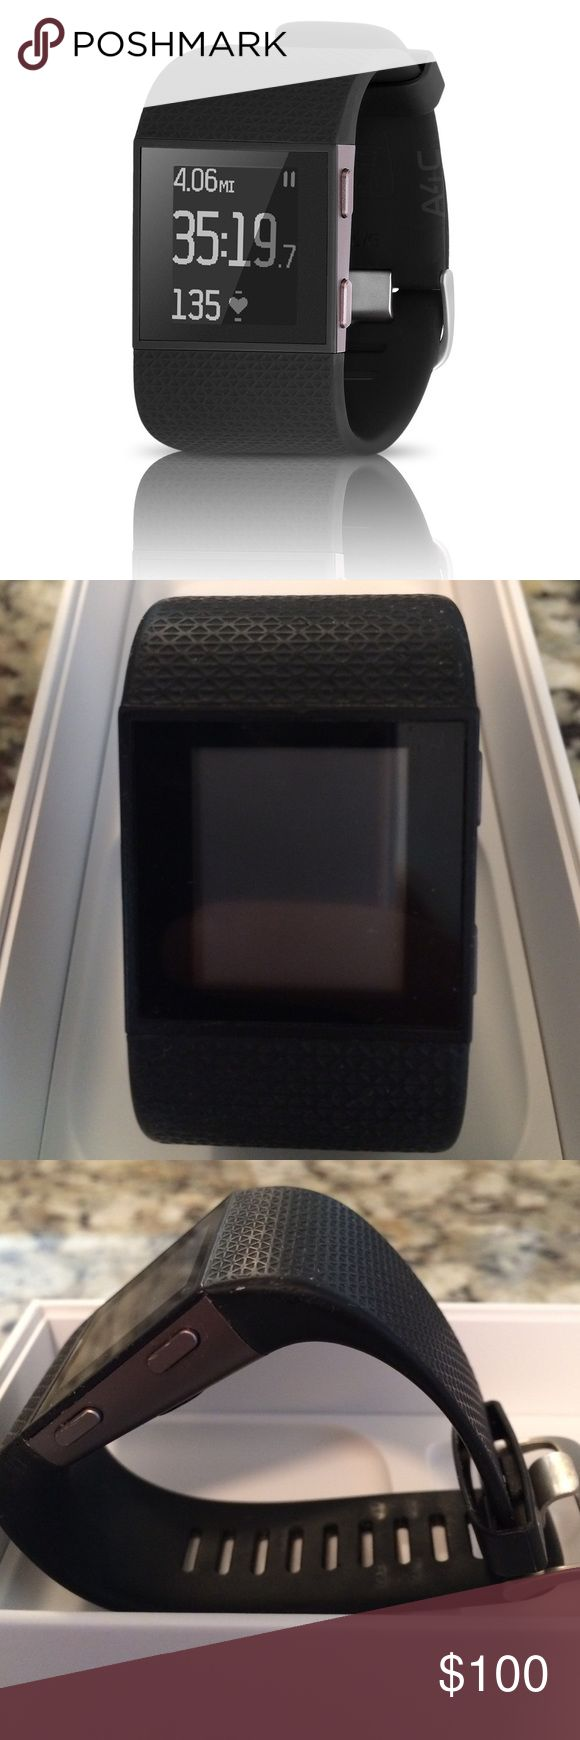 GUC Fitbit Surge smartwatch, size small, black Used less than a year in good condition. Size small with black band. GPS, built in HR, stopwatch/timer feature, alarm clock, tracks calories, steps, floors and distance. Notification such as text messages and missed calls. Syncs with most smartphones via the app. *Does not come with cable charger but they are less than $5 on Amazon* no scratches on face, minor wear to band, price firm, these retail for $250! (1st picture is a stock photo) same…